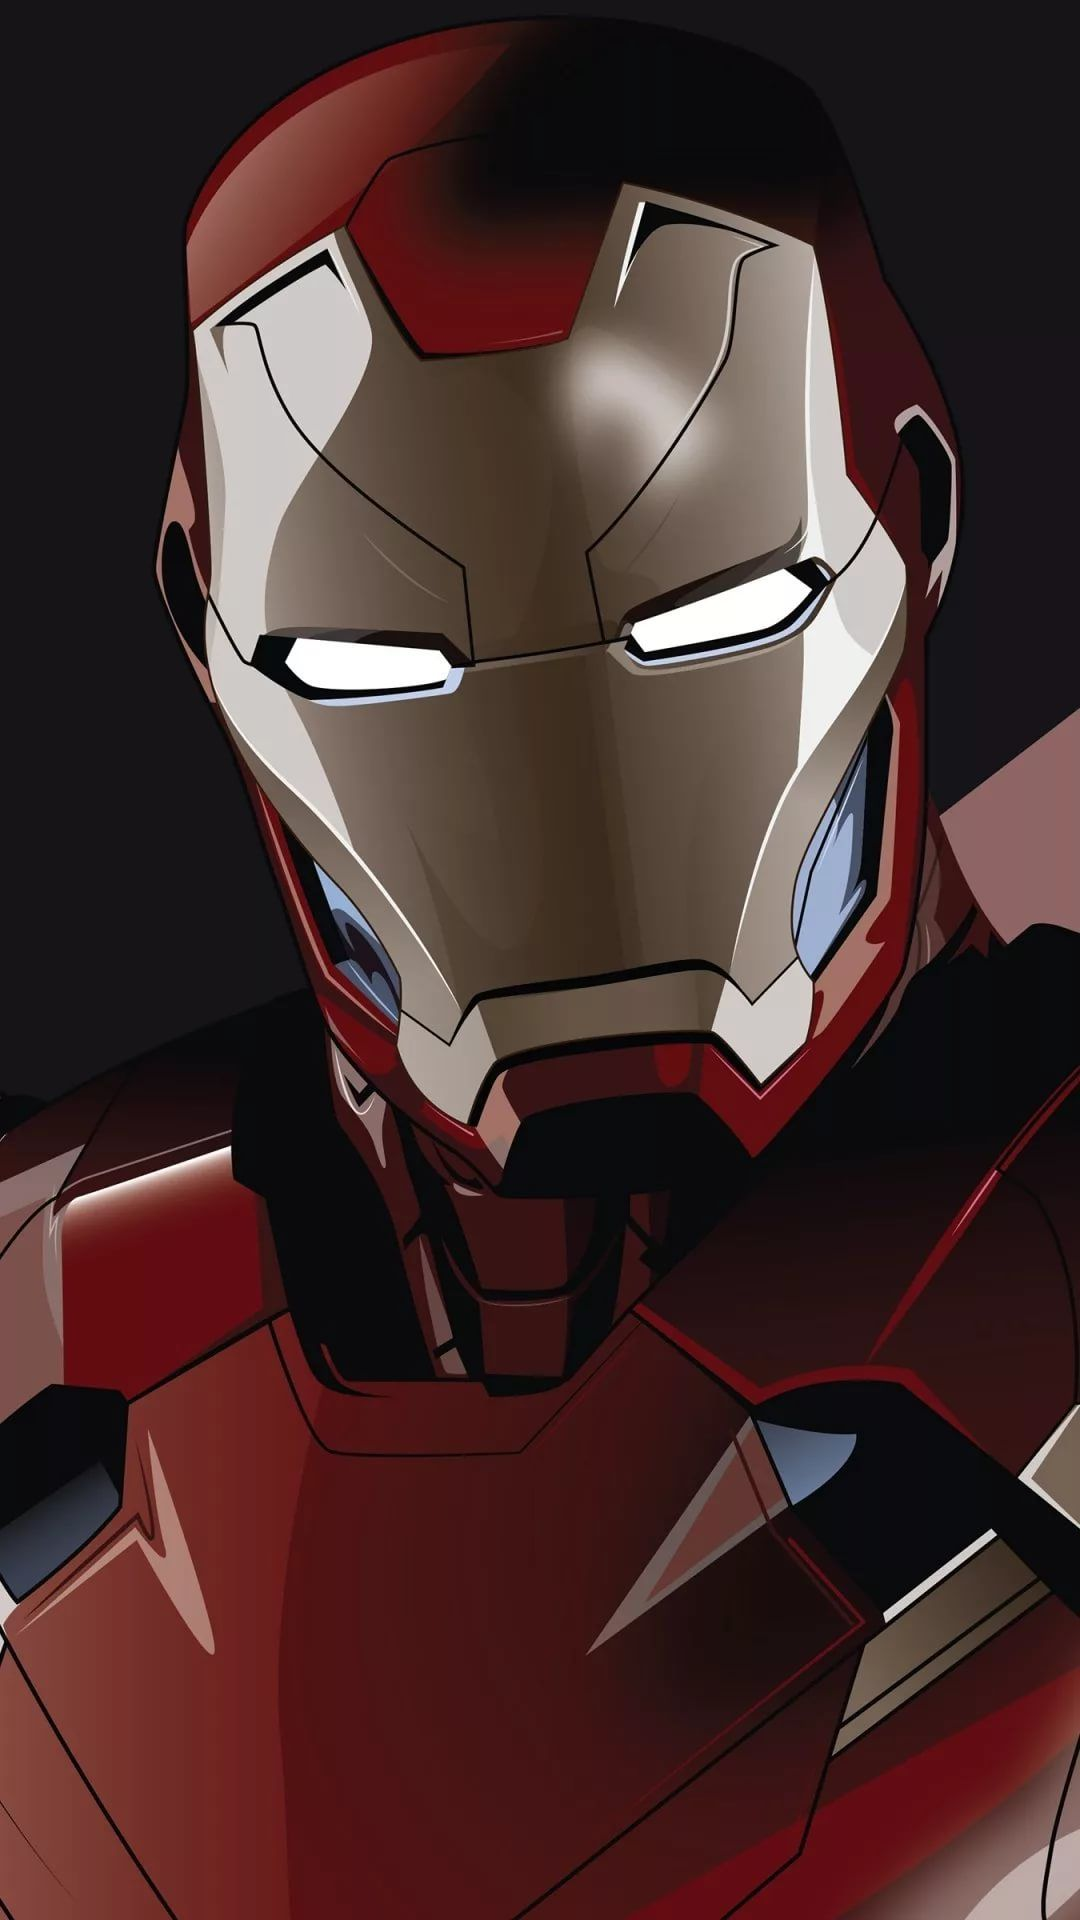 Iron Man D cool wallpapers for iPhone 6